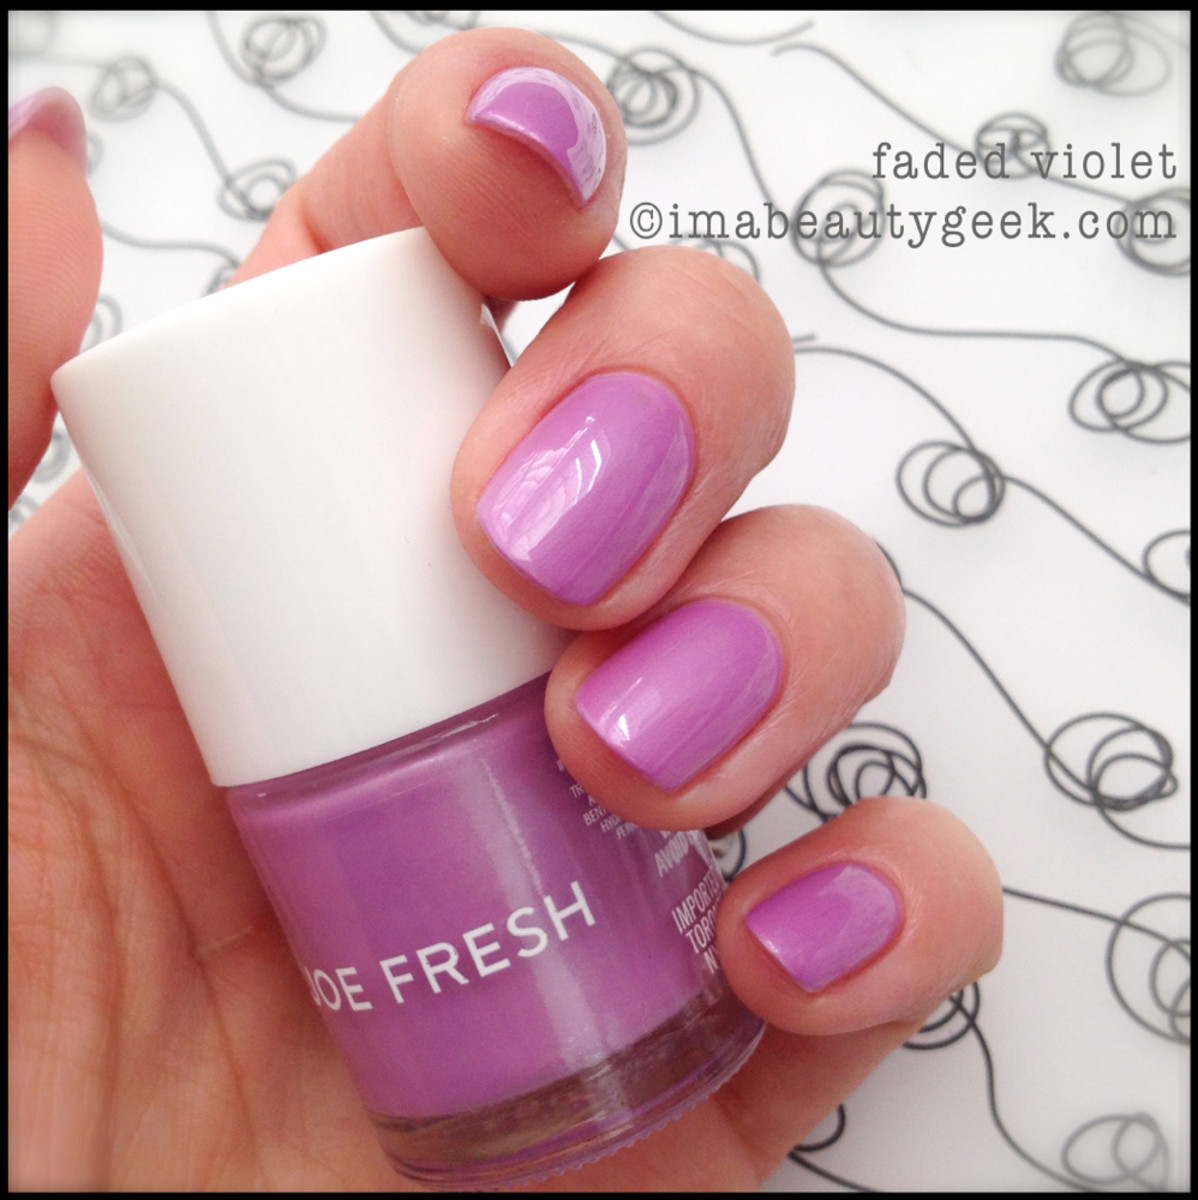 Joe Fresh Polish Faded Violet